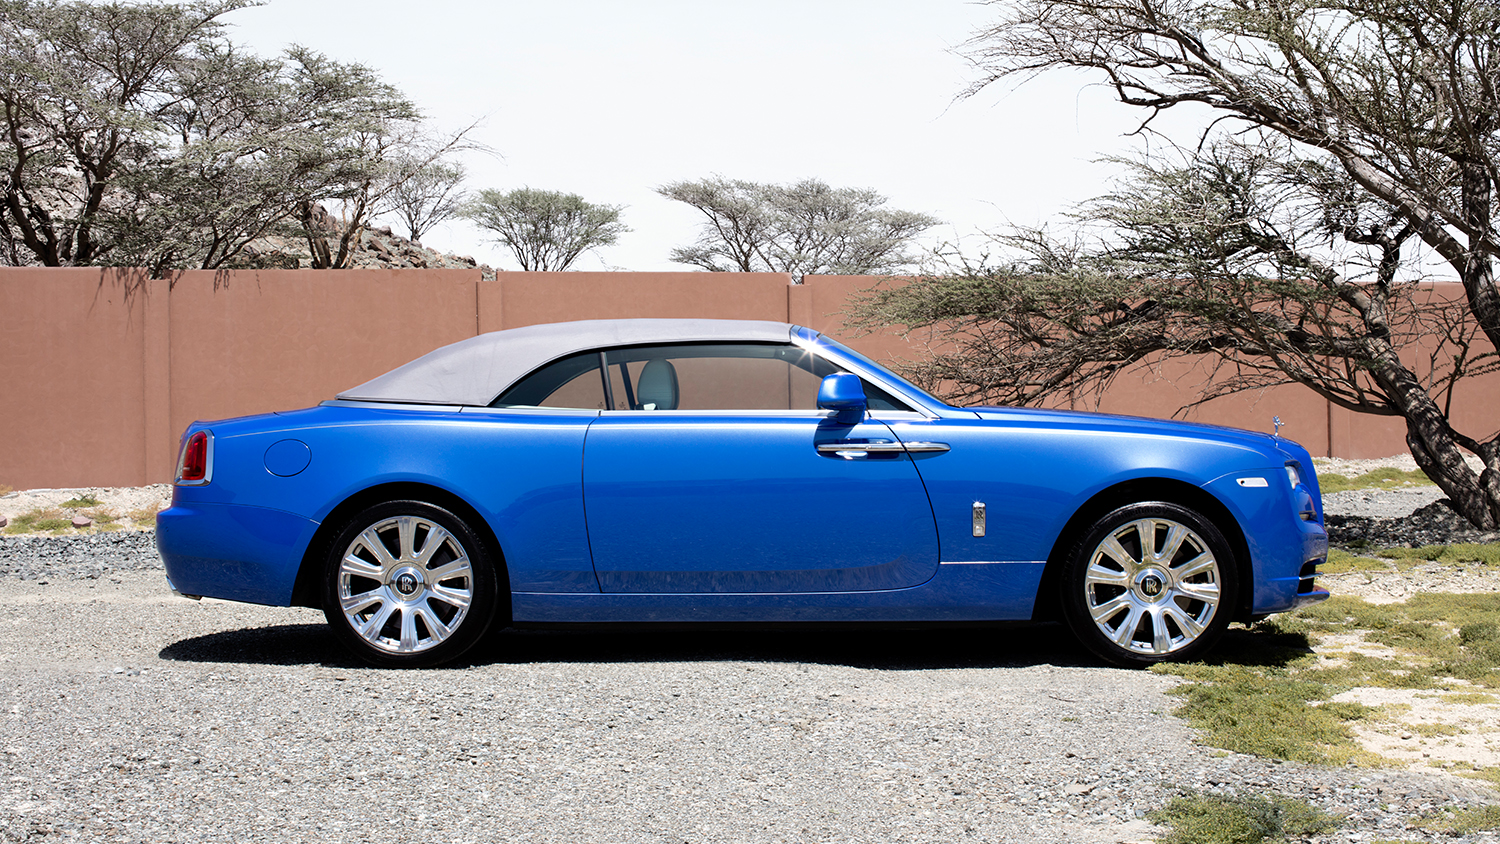 _Rolls_Royce_Exceptional_Encounter_1500x844px_08.jpg